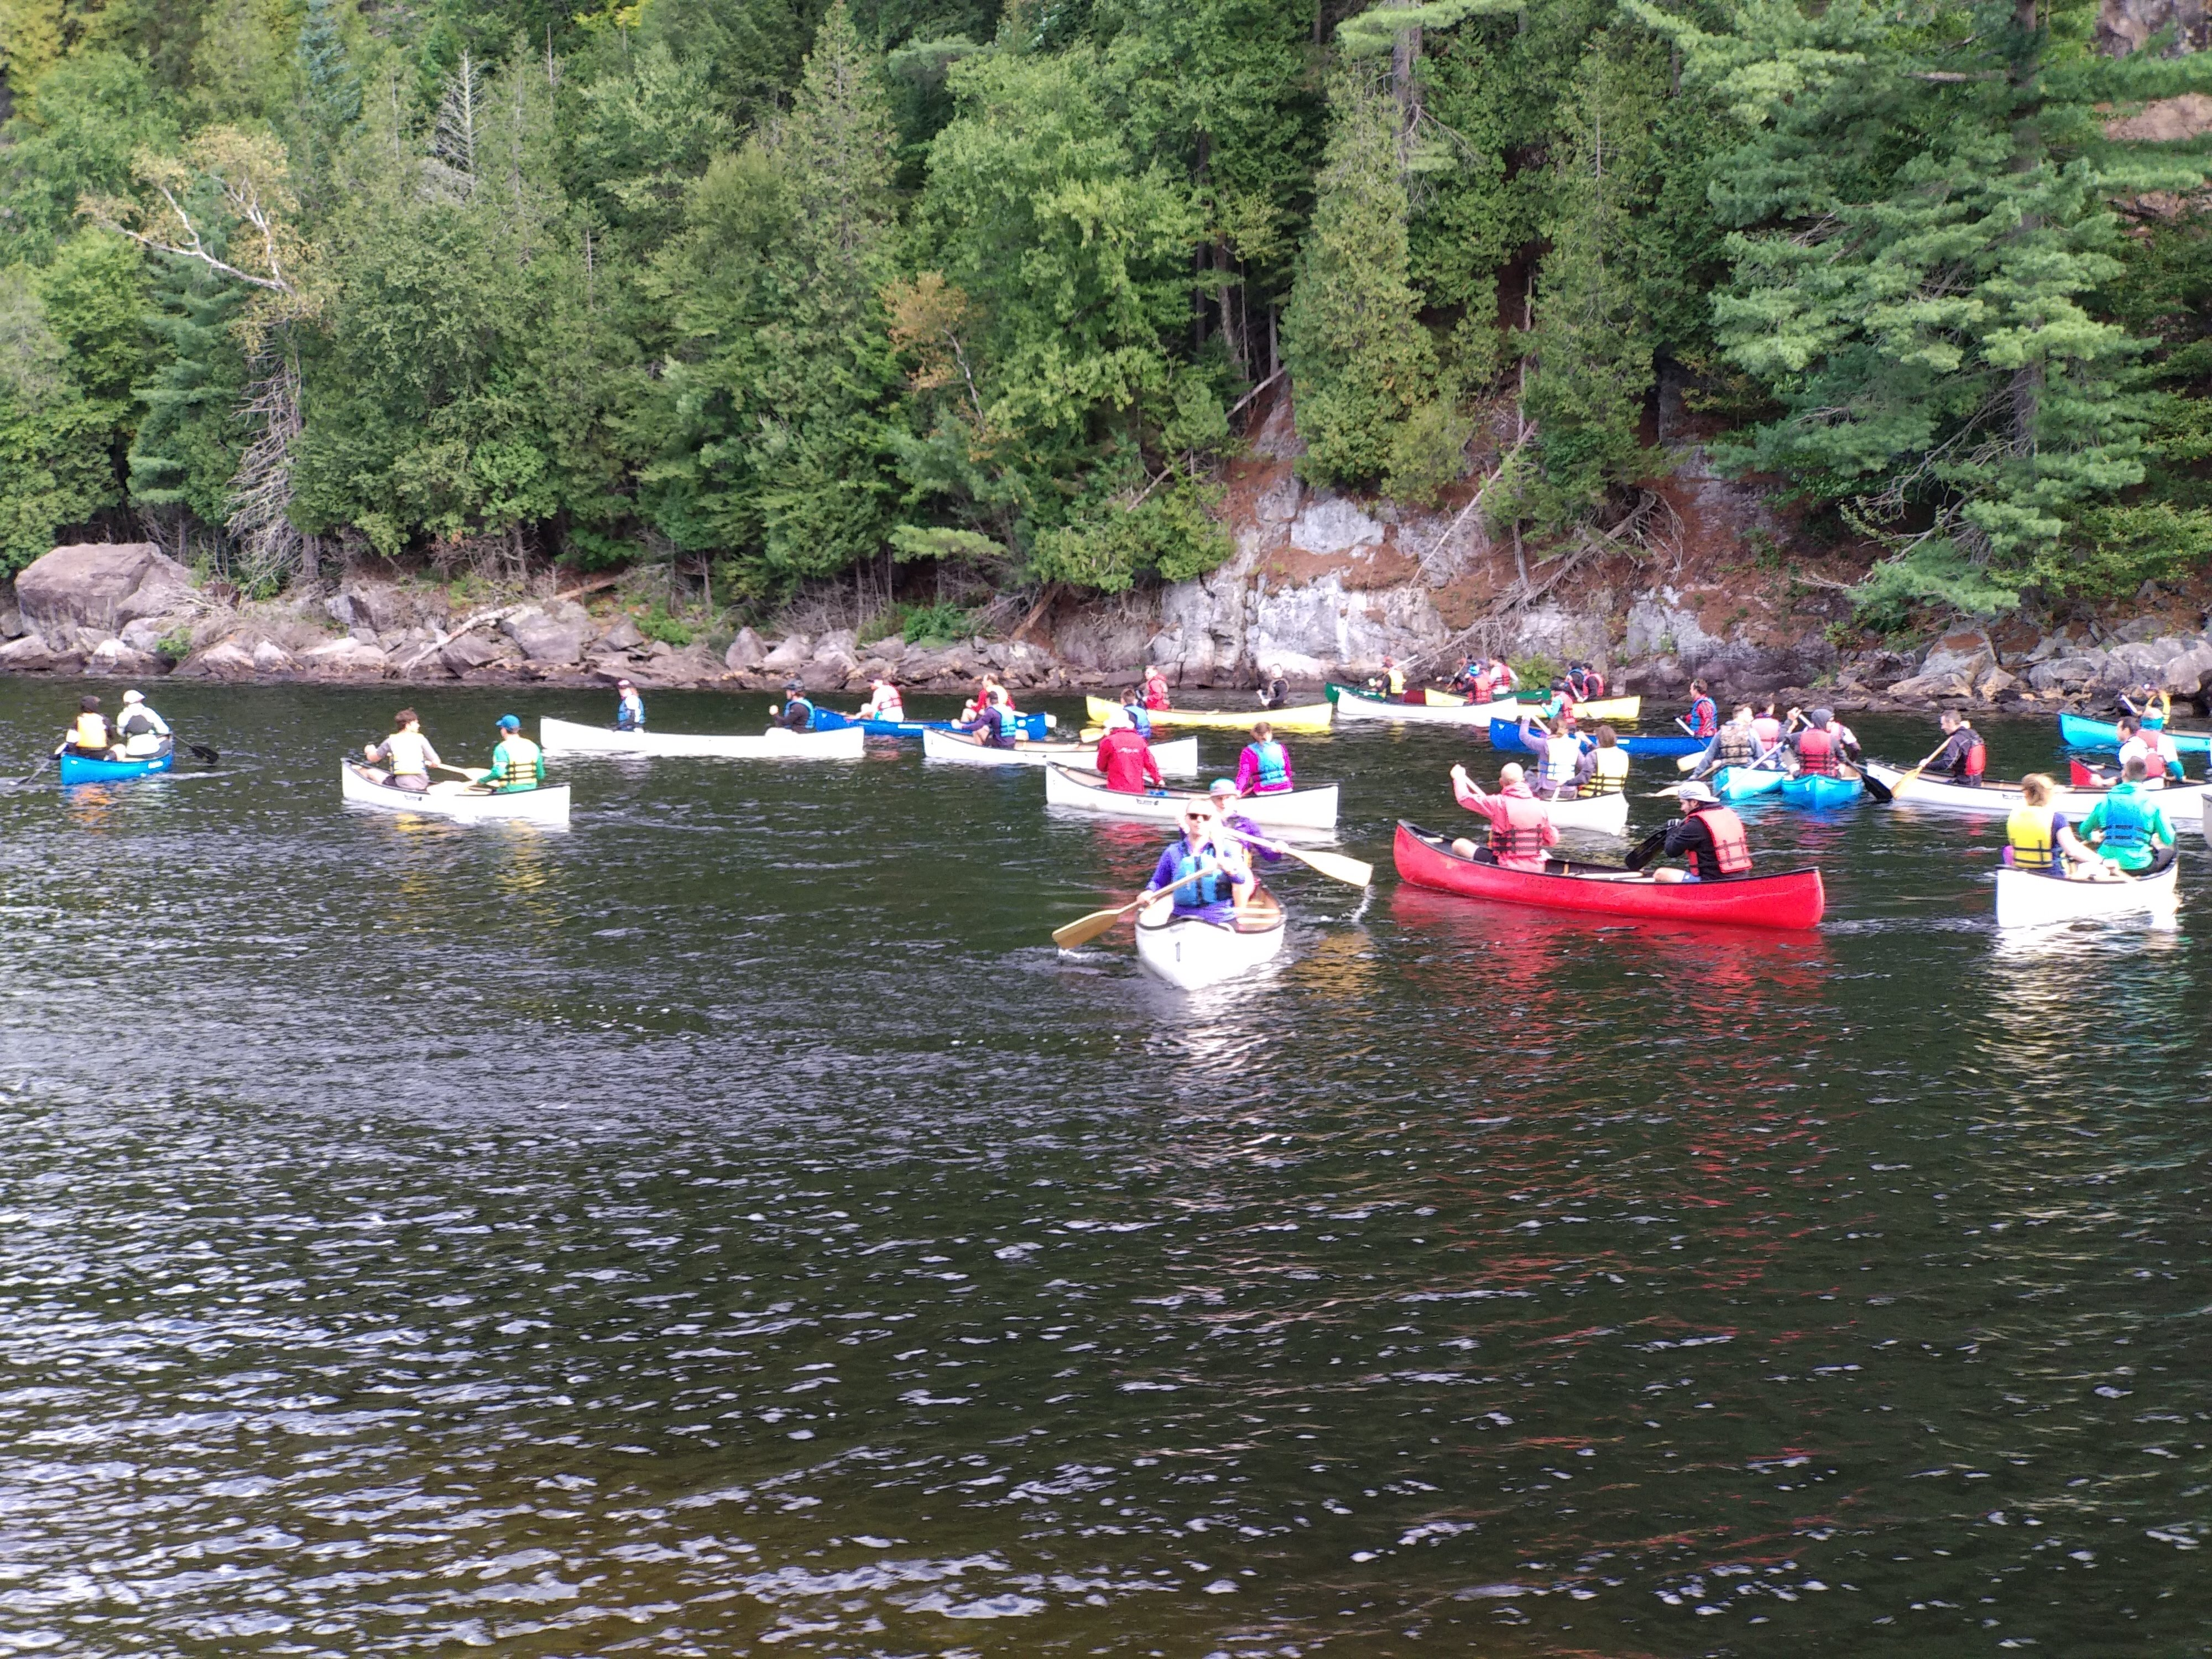 kayaks on river with several participants